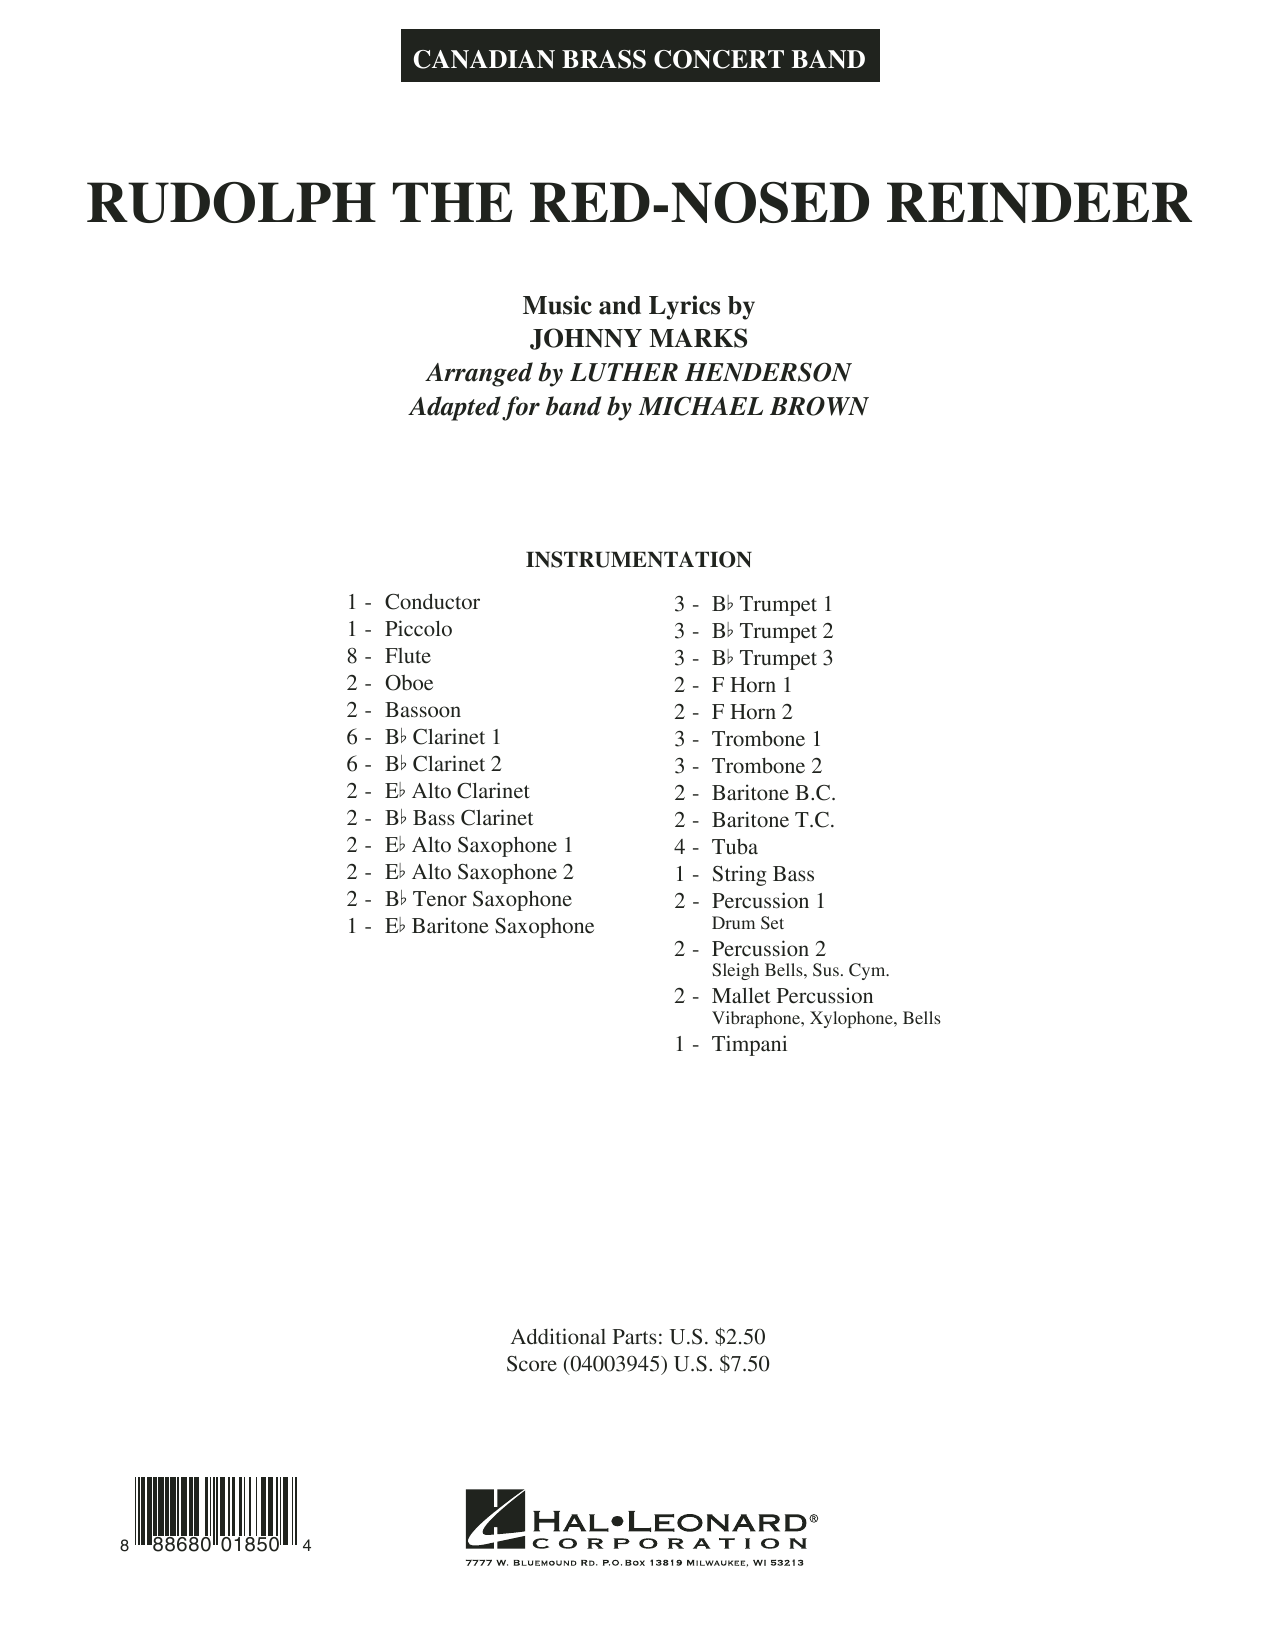 Rudolph the Red-Nosed Reindeer (Canadian Brass) - Conductor Score (Full Score) (Concert Band)